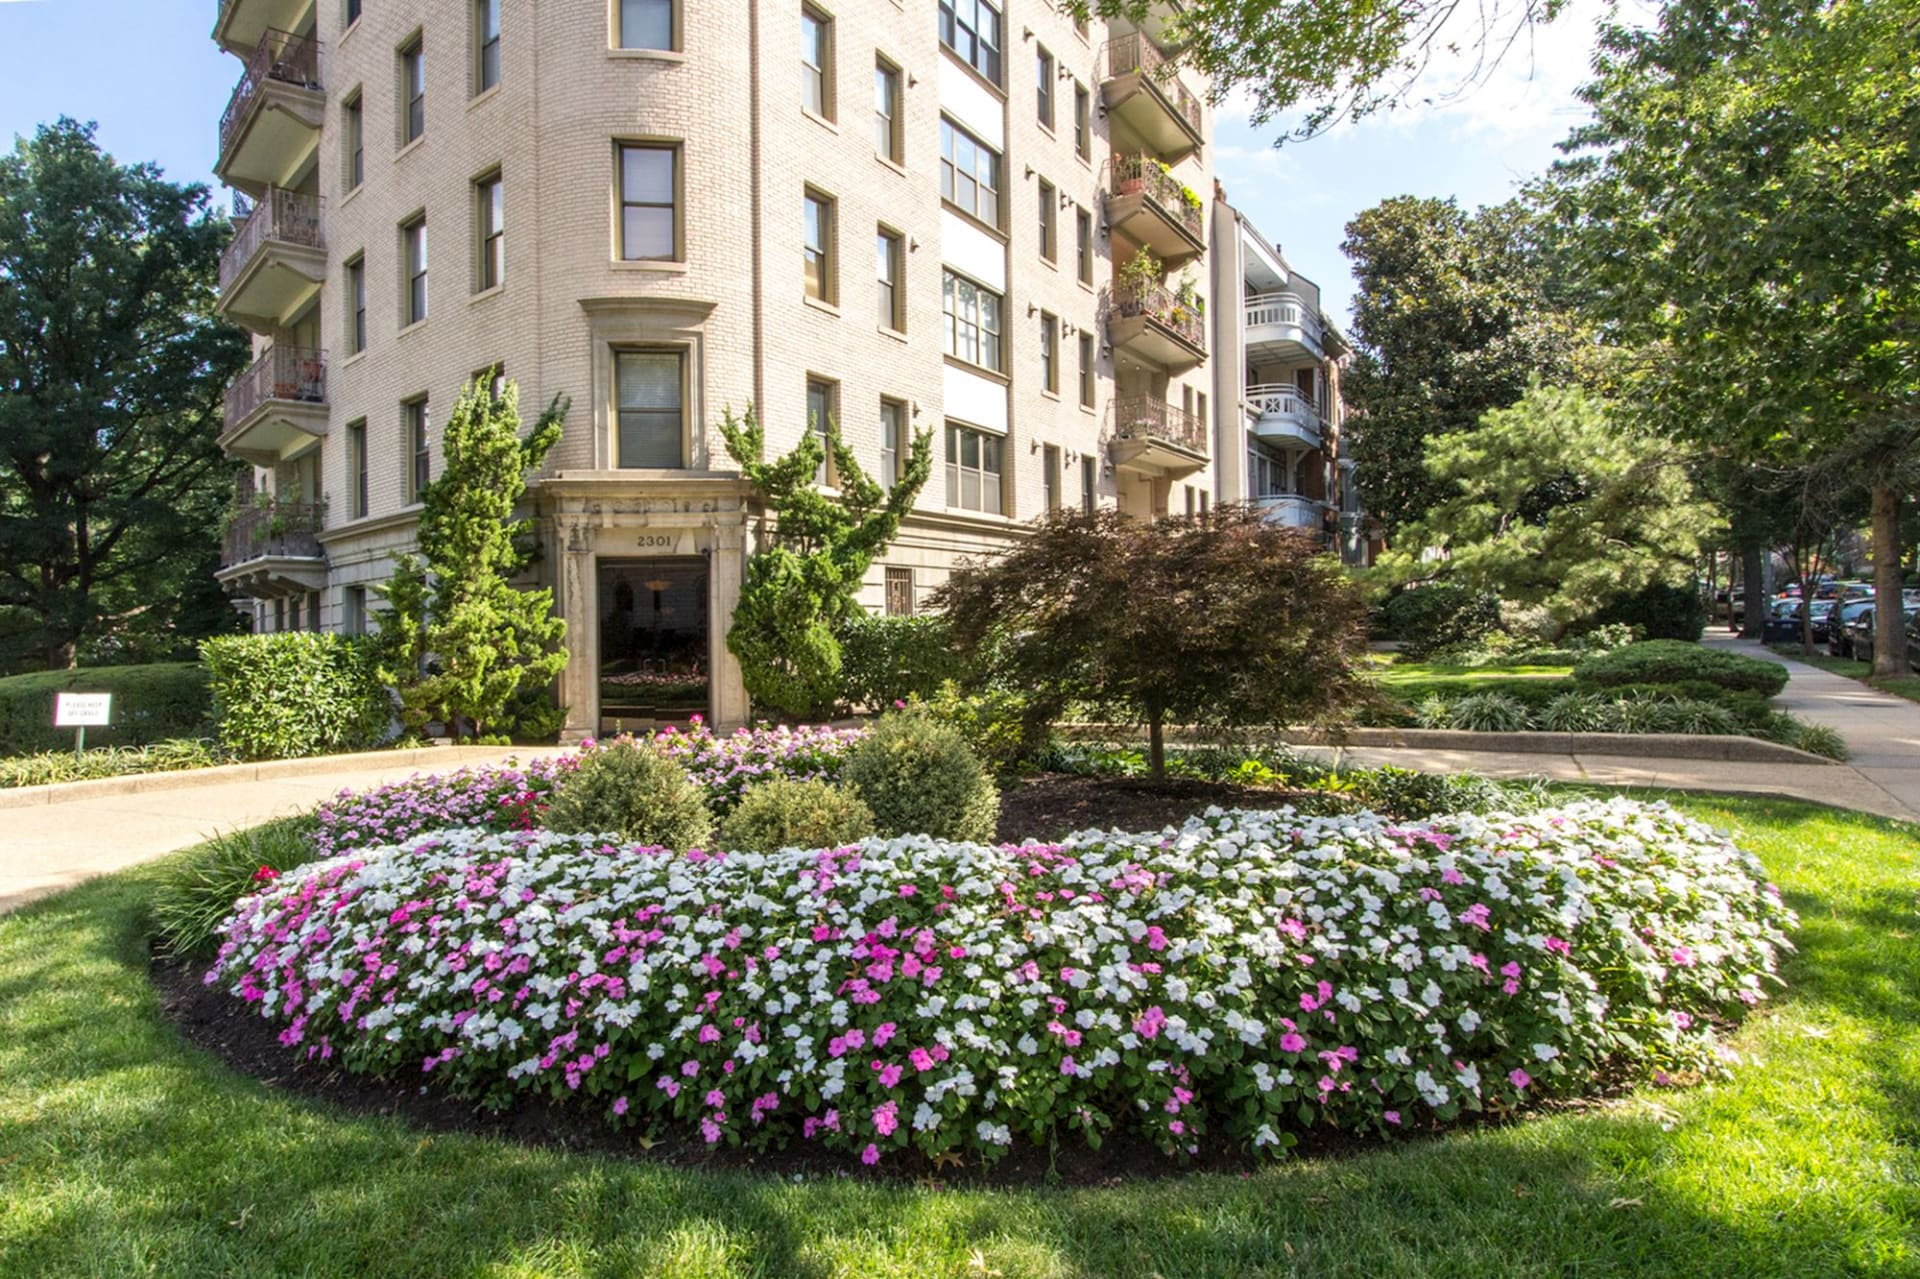 2301 Connecticut Ave NW, #2C